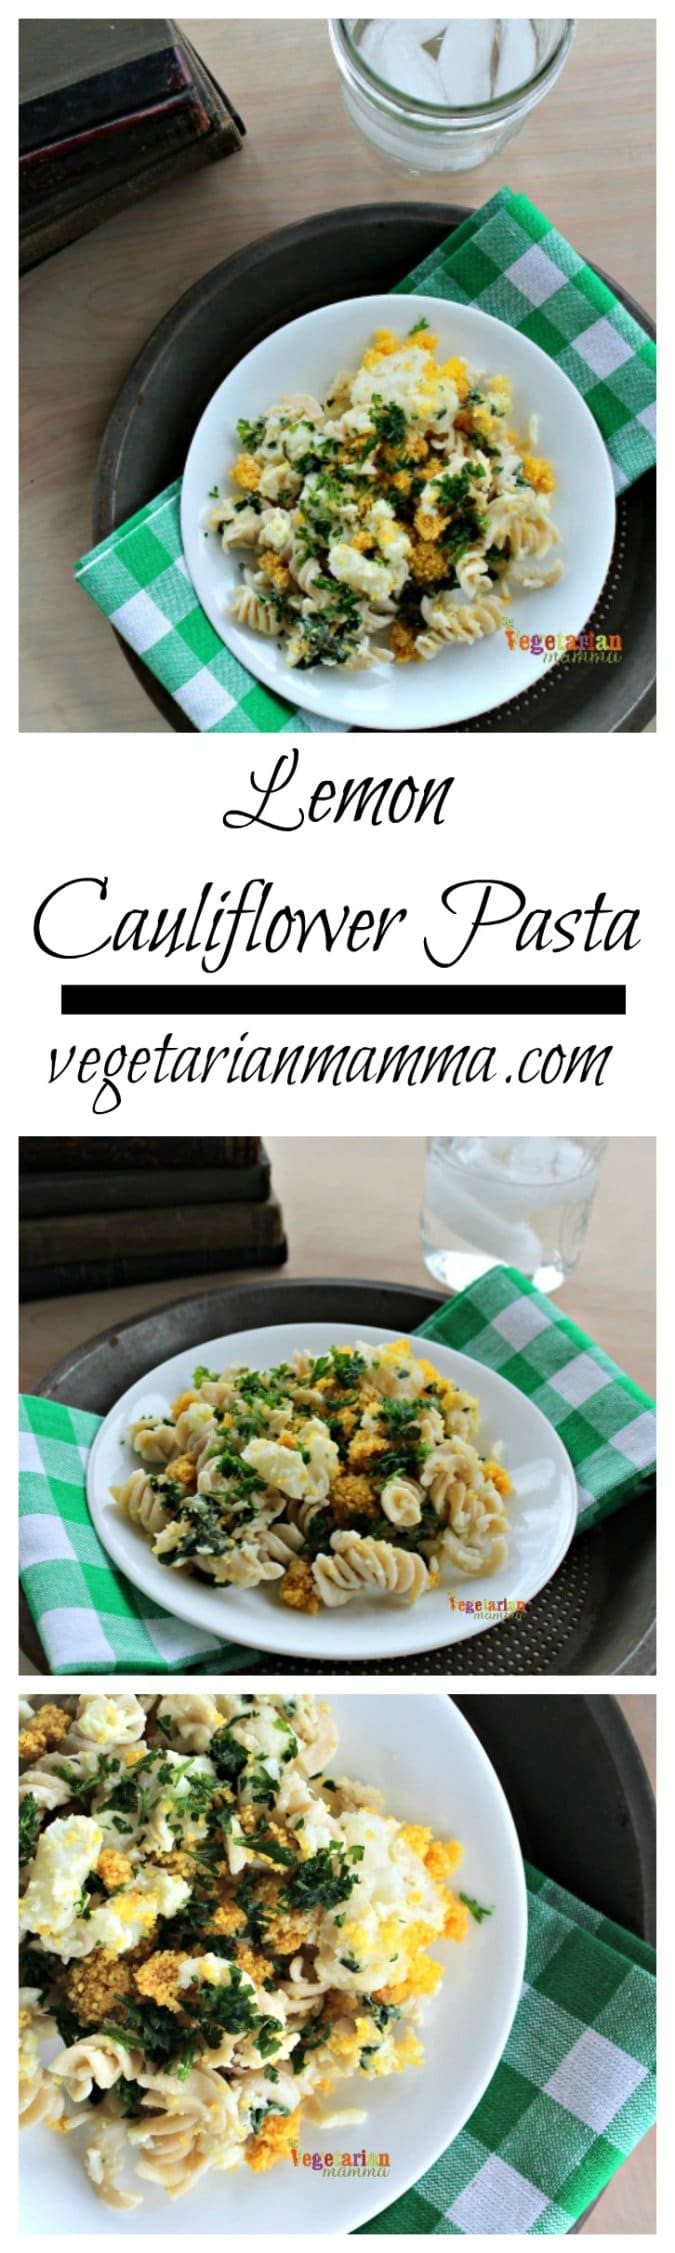 Lemon Cauliflower Pasta @vegetarianmamma.com #vegetarian #lemon #pasta #glutenfree #cauliflower